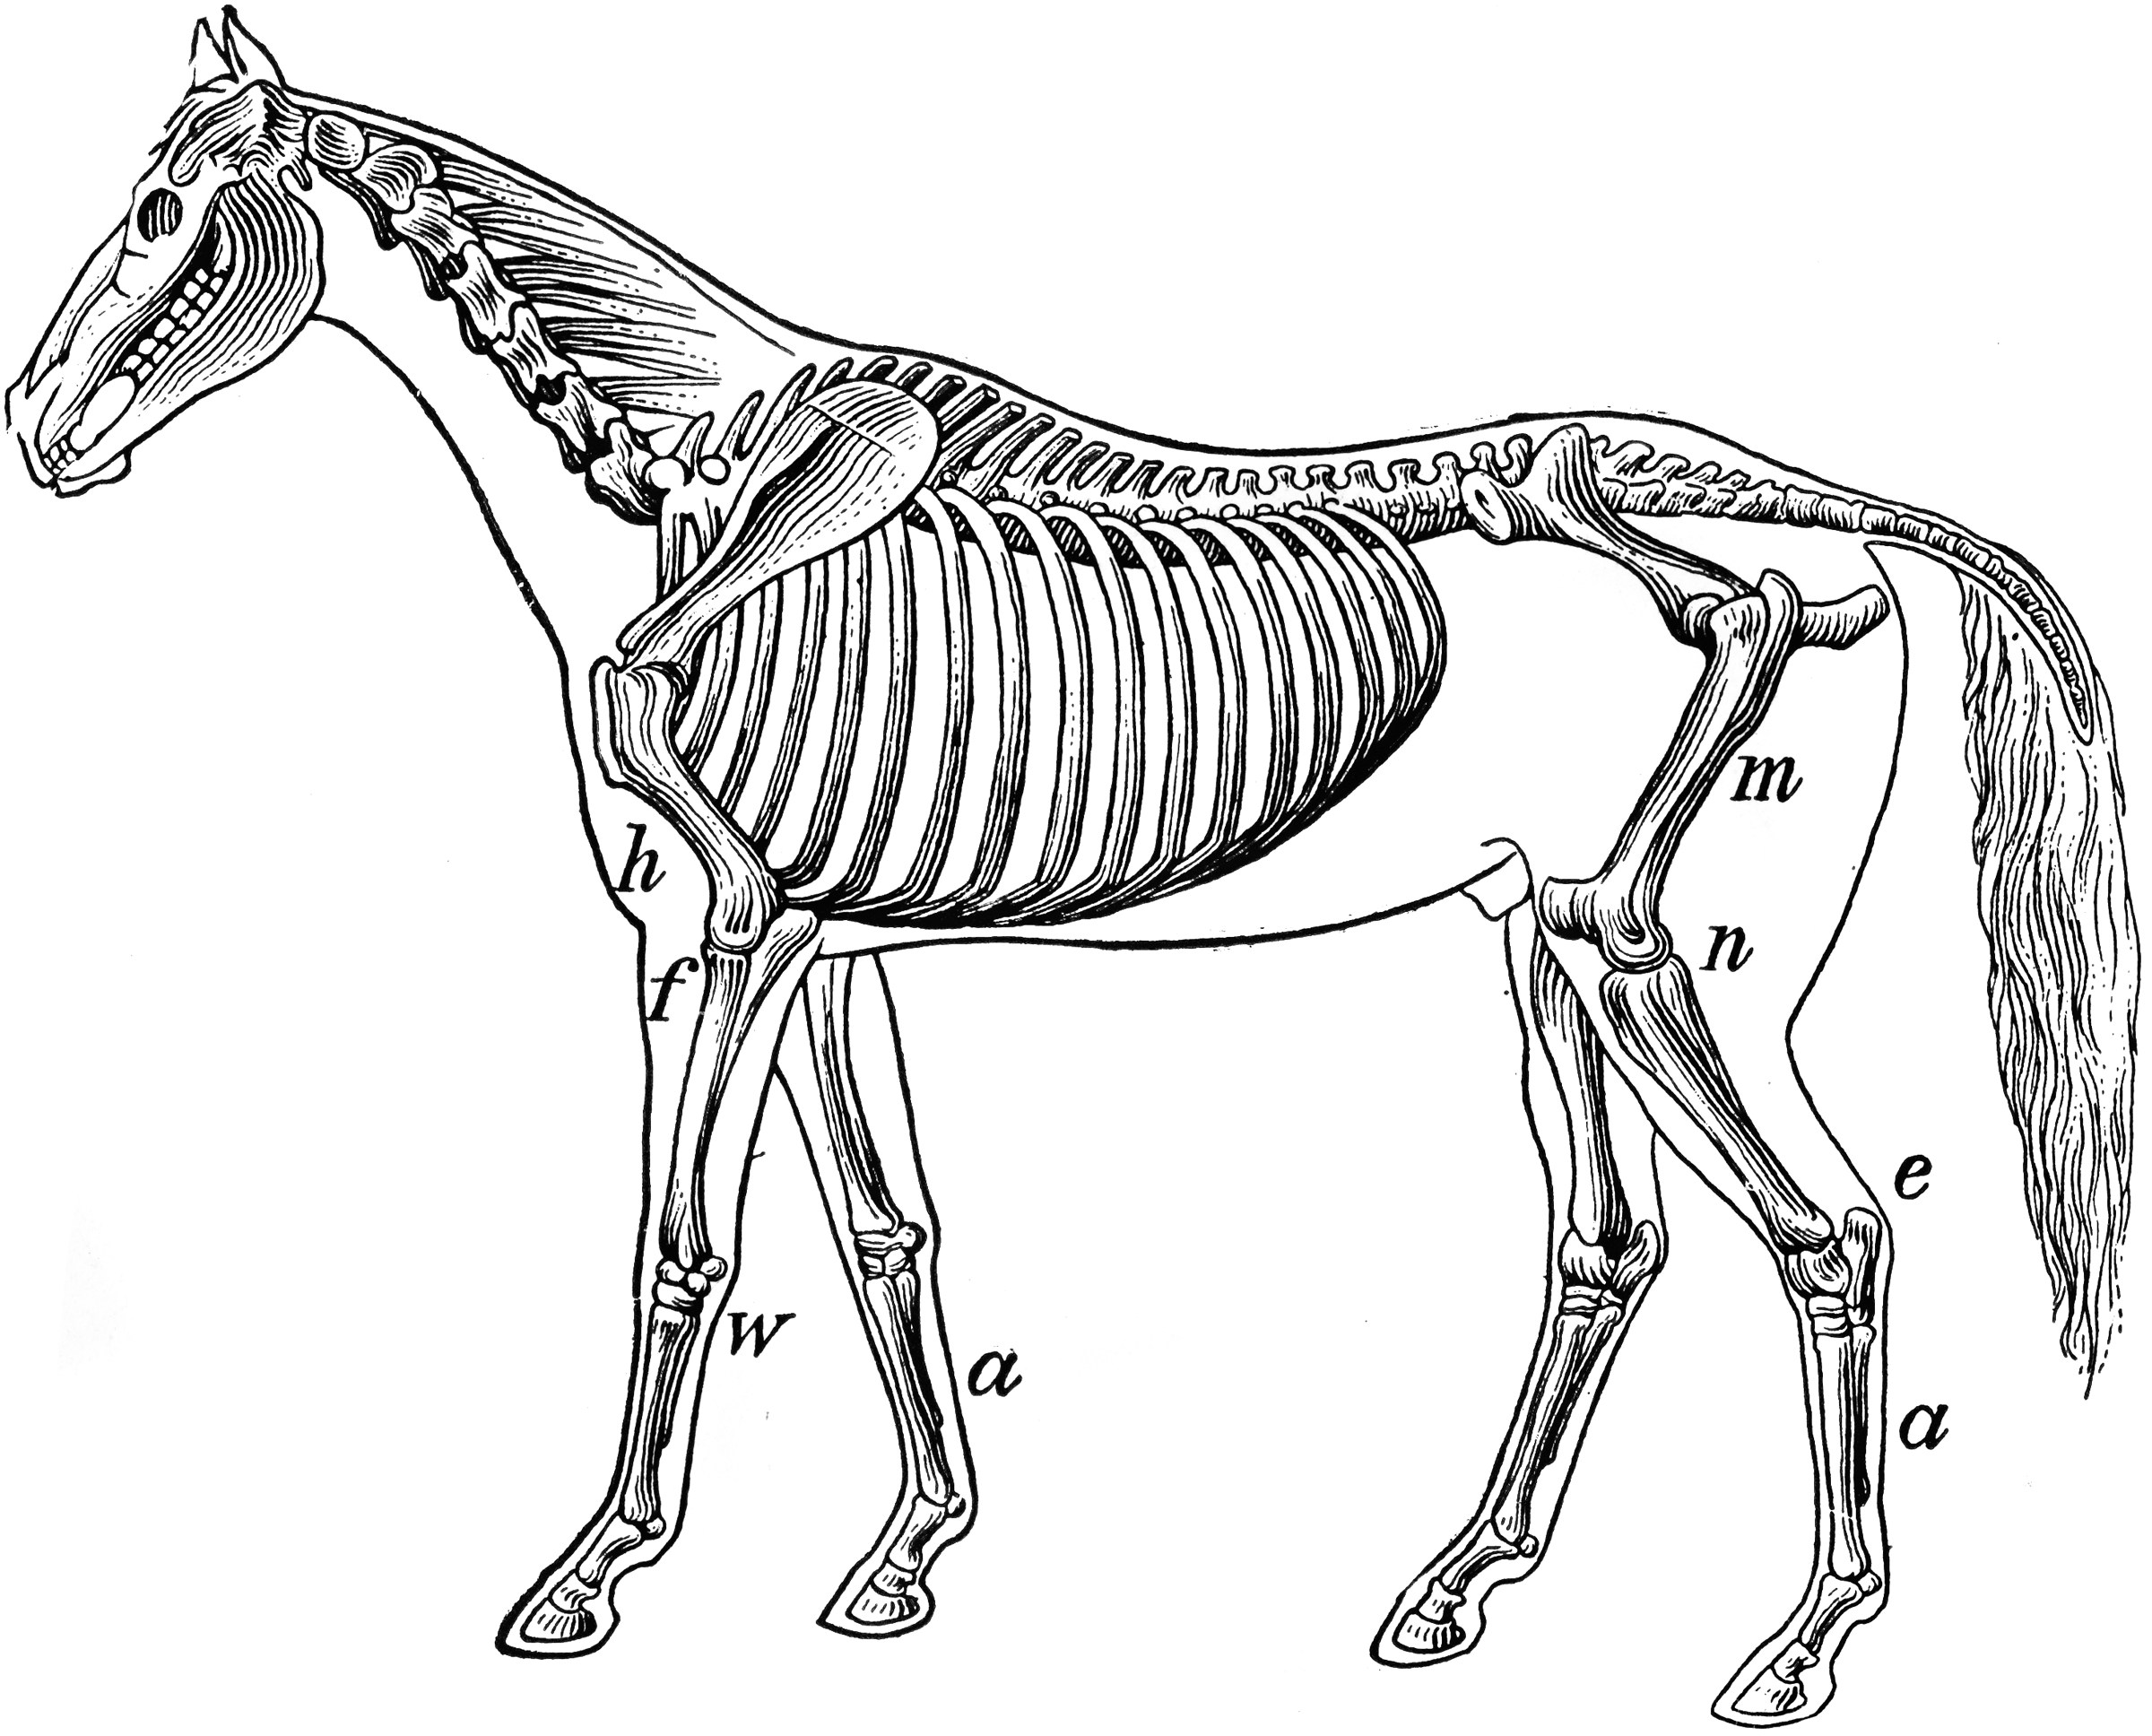 horse skull diagram lifestyle mid position valve wiring skeleton of a clipart etc